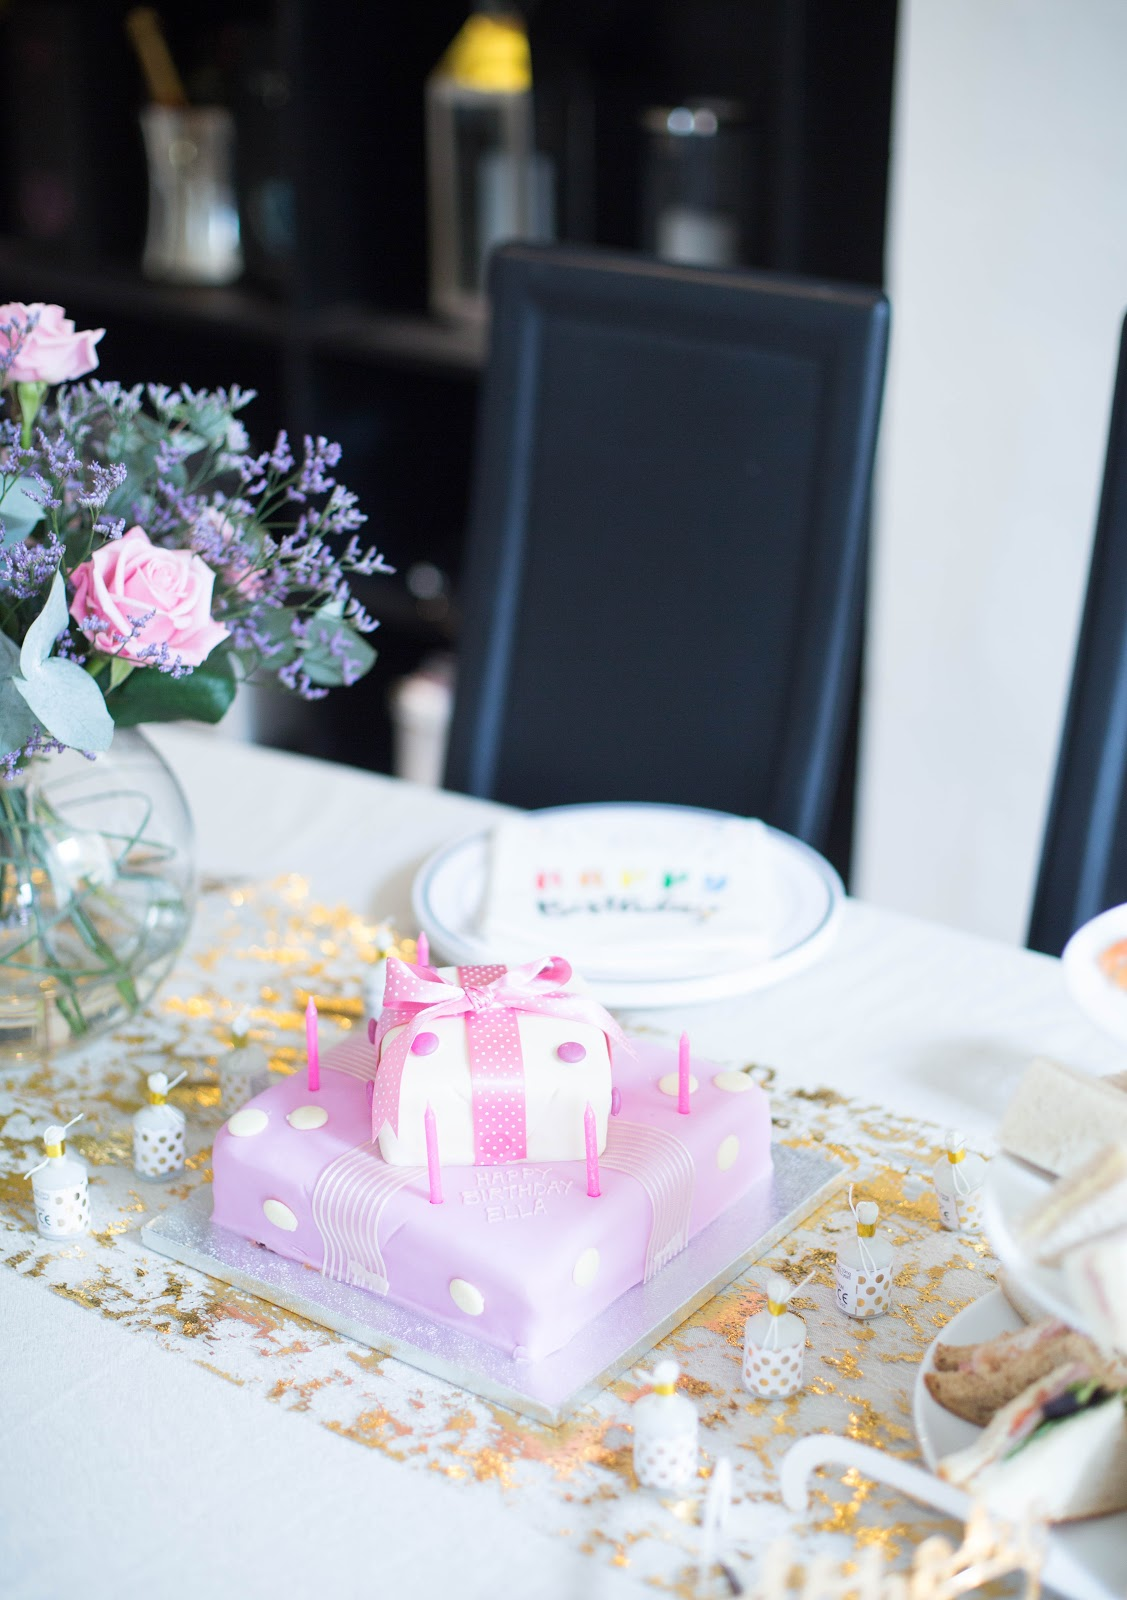 Our Pink Parcel Cake Was From Waitrose And It Definitely Tasted As Good Looked If Not Better